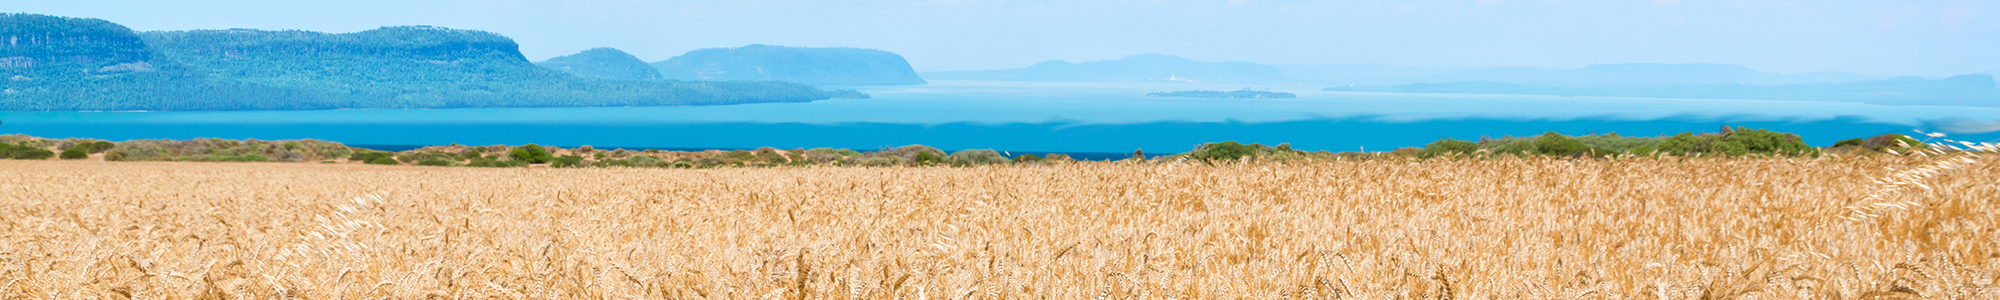 Wheat field with an Ontario great lake in the background